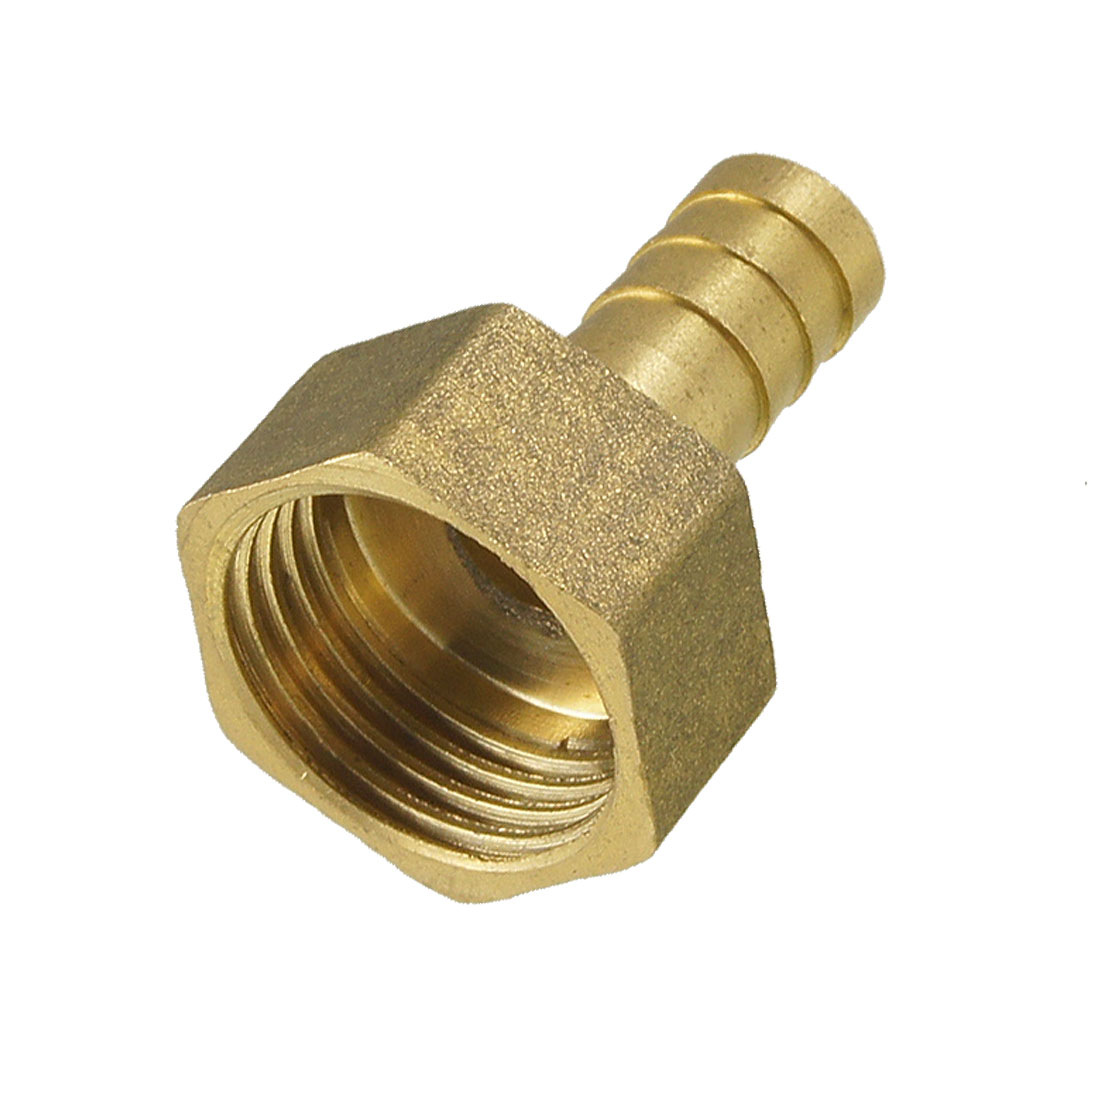 "Gold Tone Brass Fitting 10mm Hose Barb 1/2"" NPT Female Thread Straight Connector"